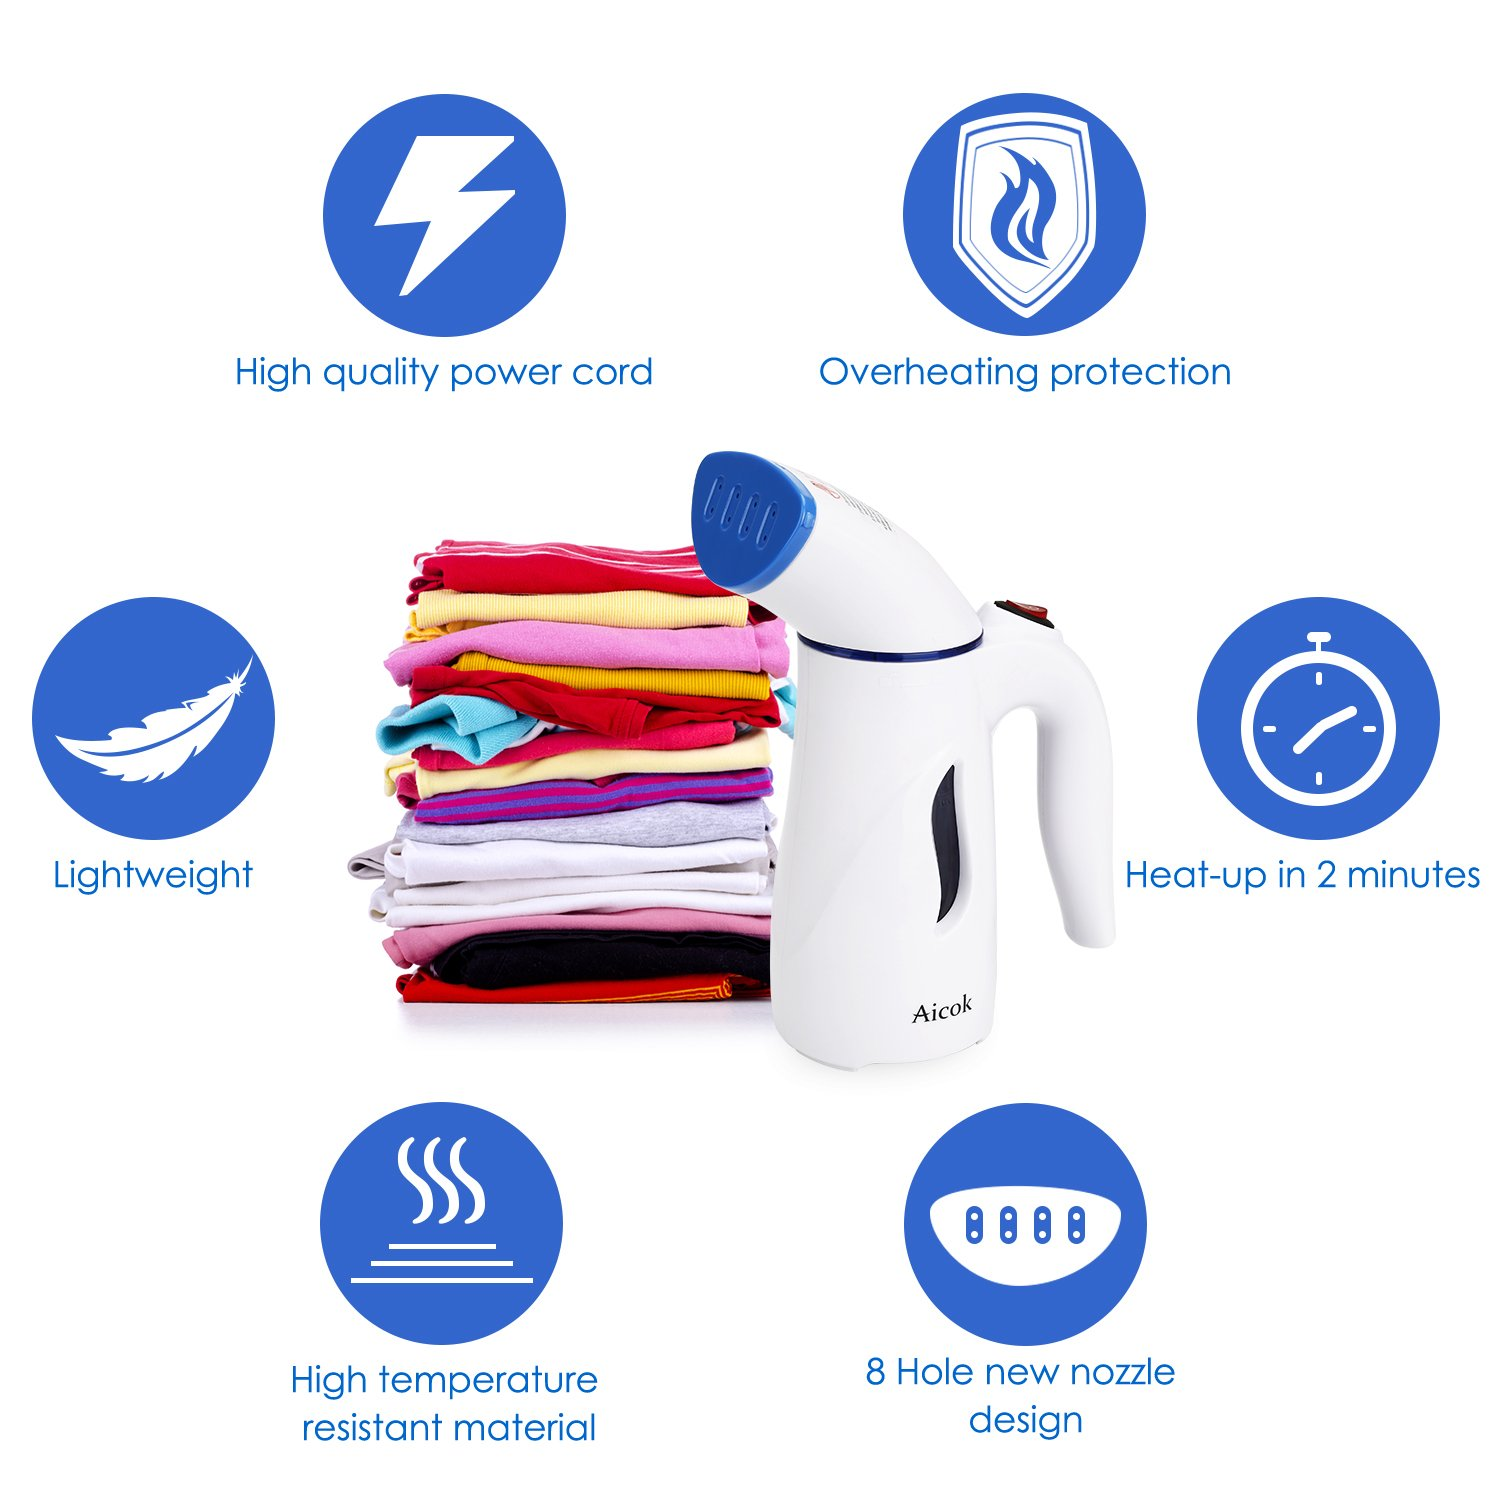 Aicok Clothes Steamer, Mini Travel Garment Steamer, Fabric Steamer, Portable and Fast, with Fabric Brush and Travel Pouch